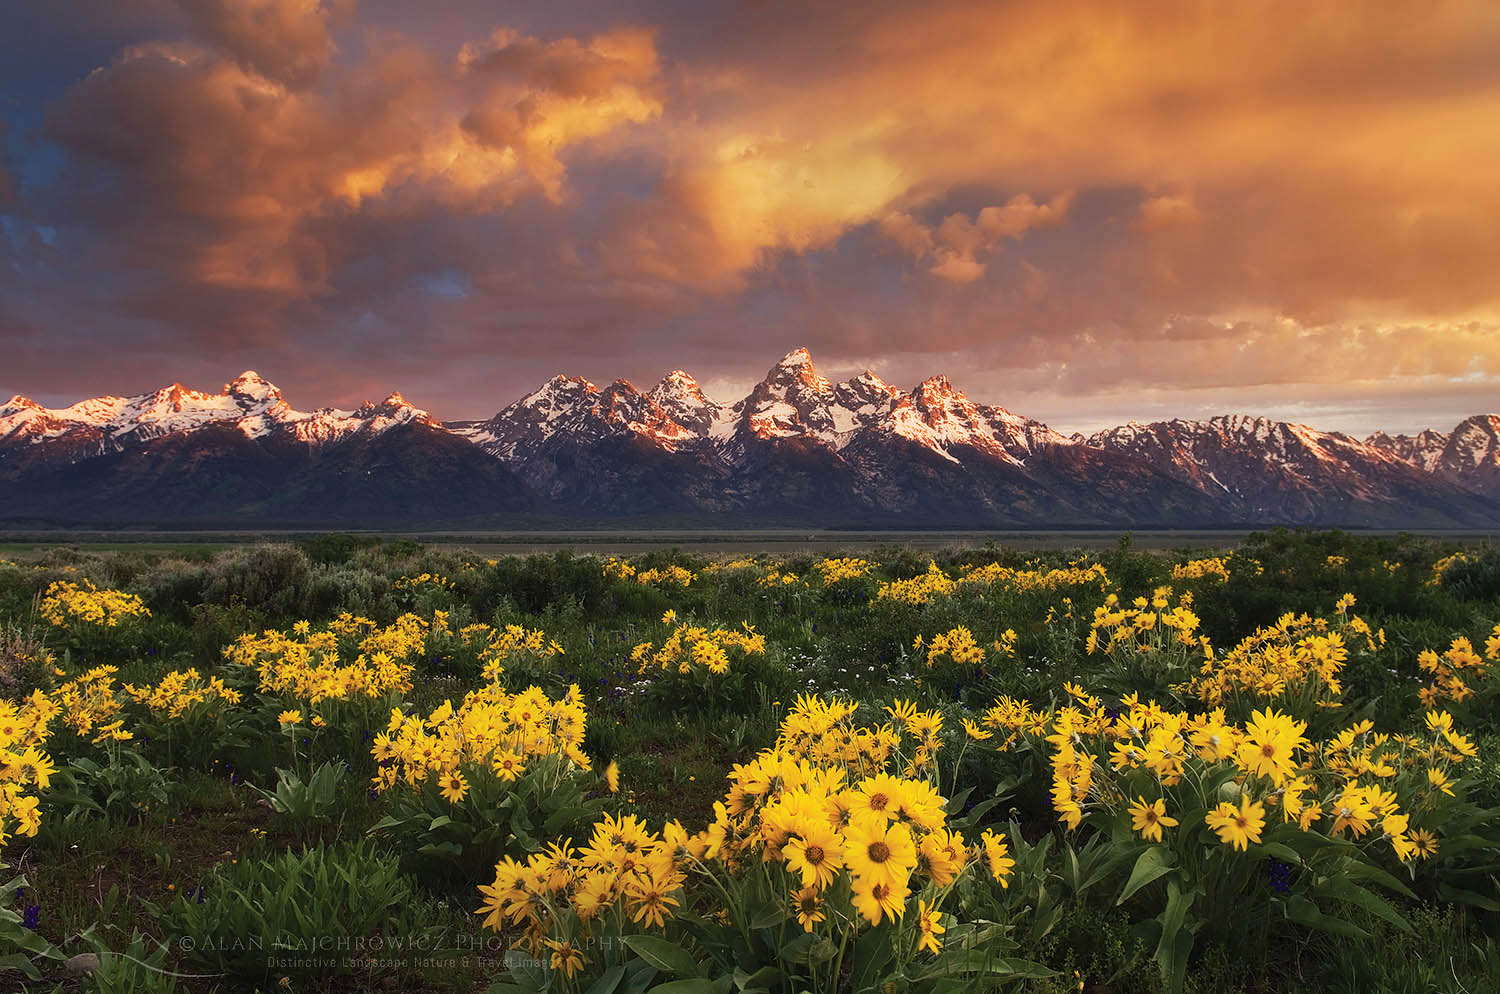 Wildflowers Grand Teton National Park Wyoming Grand Teton Photography Trip Planning